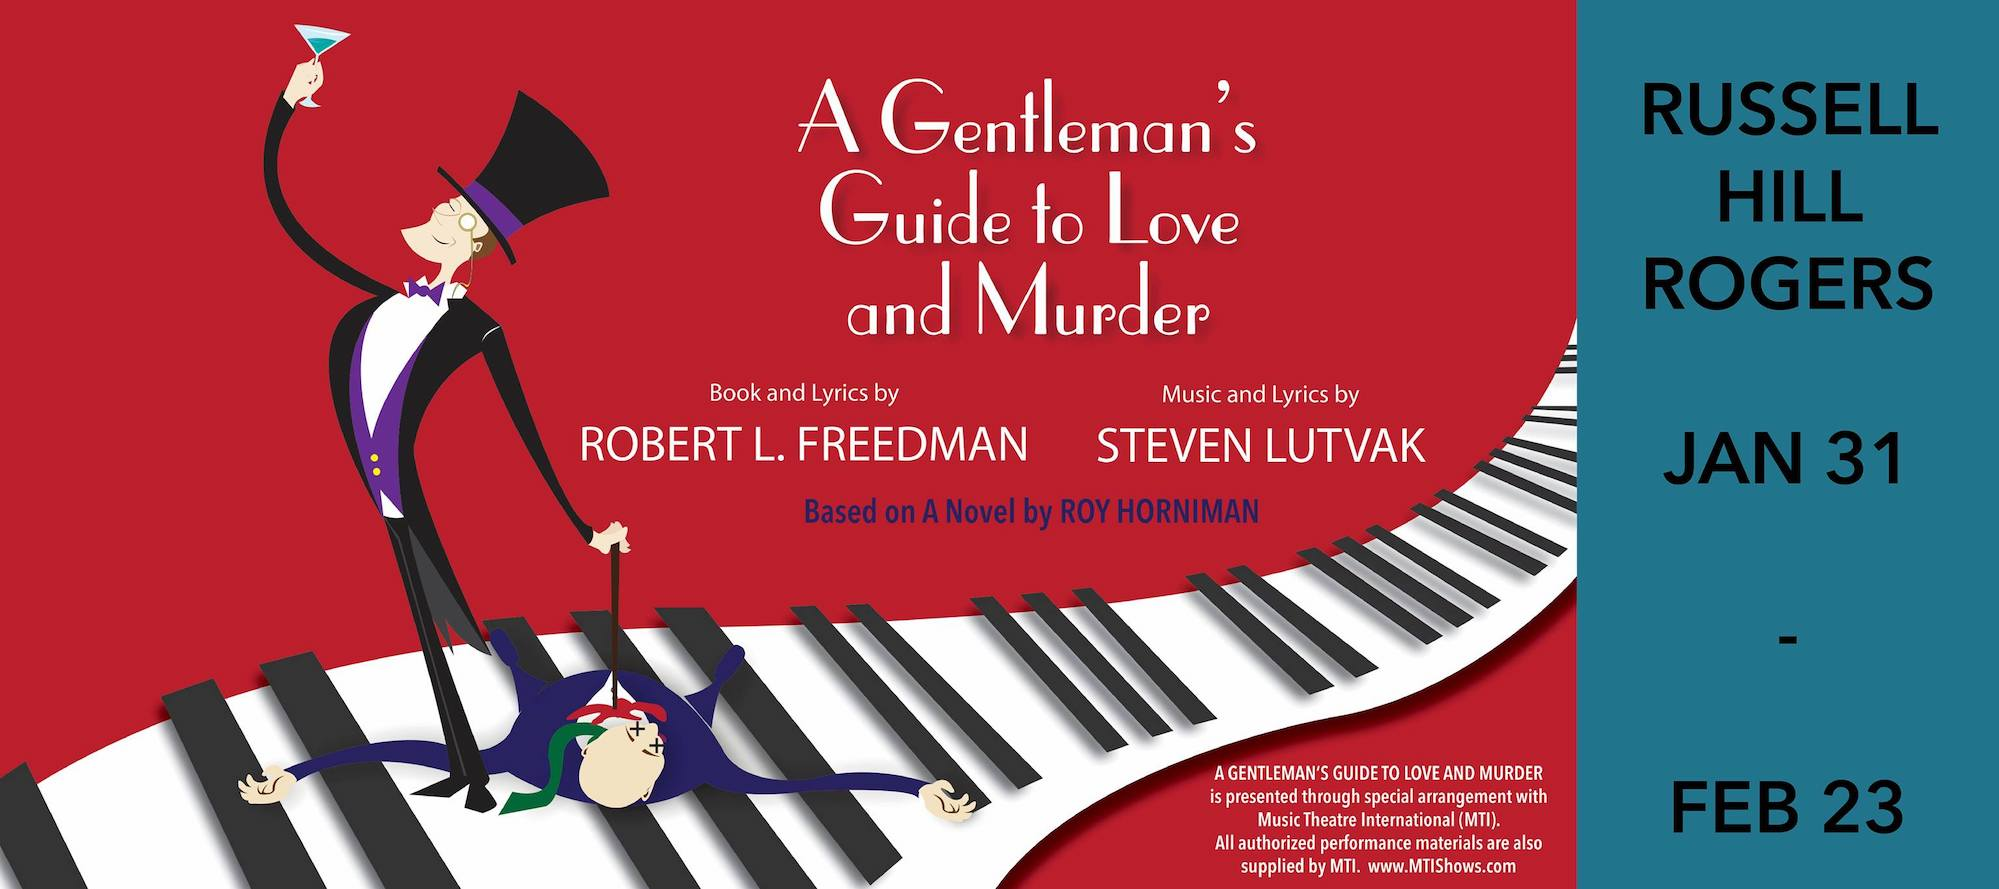 A Gentleman's Guide to Love and Murder by The Public Theater